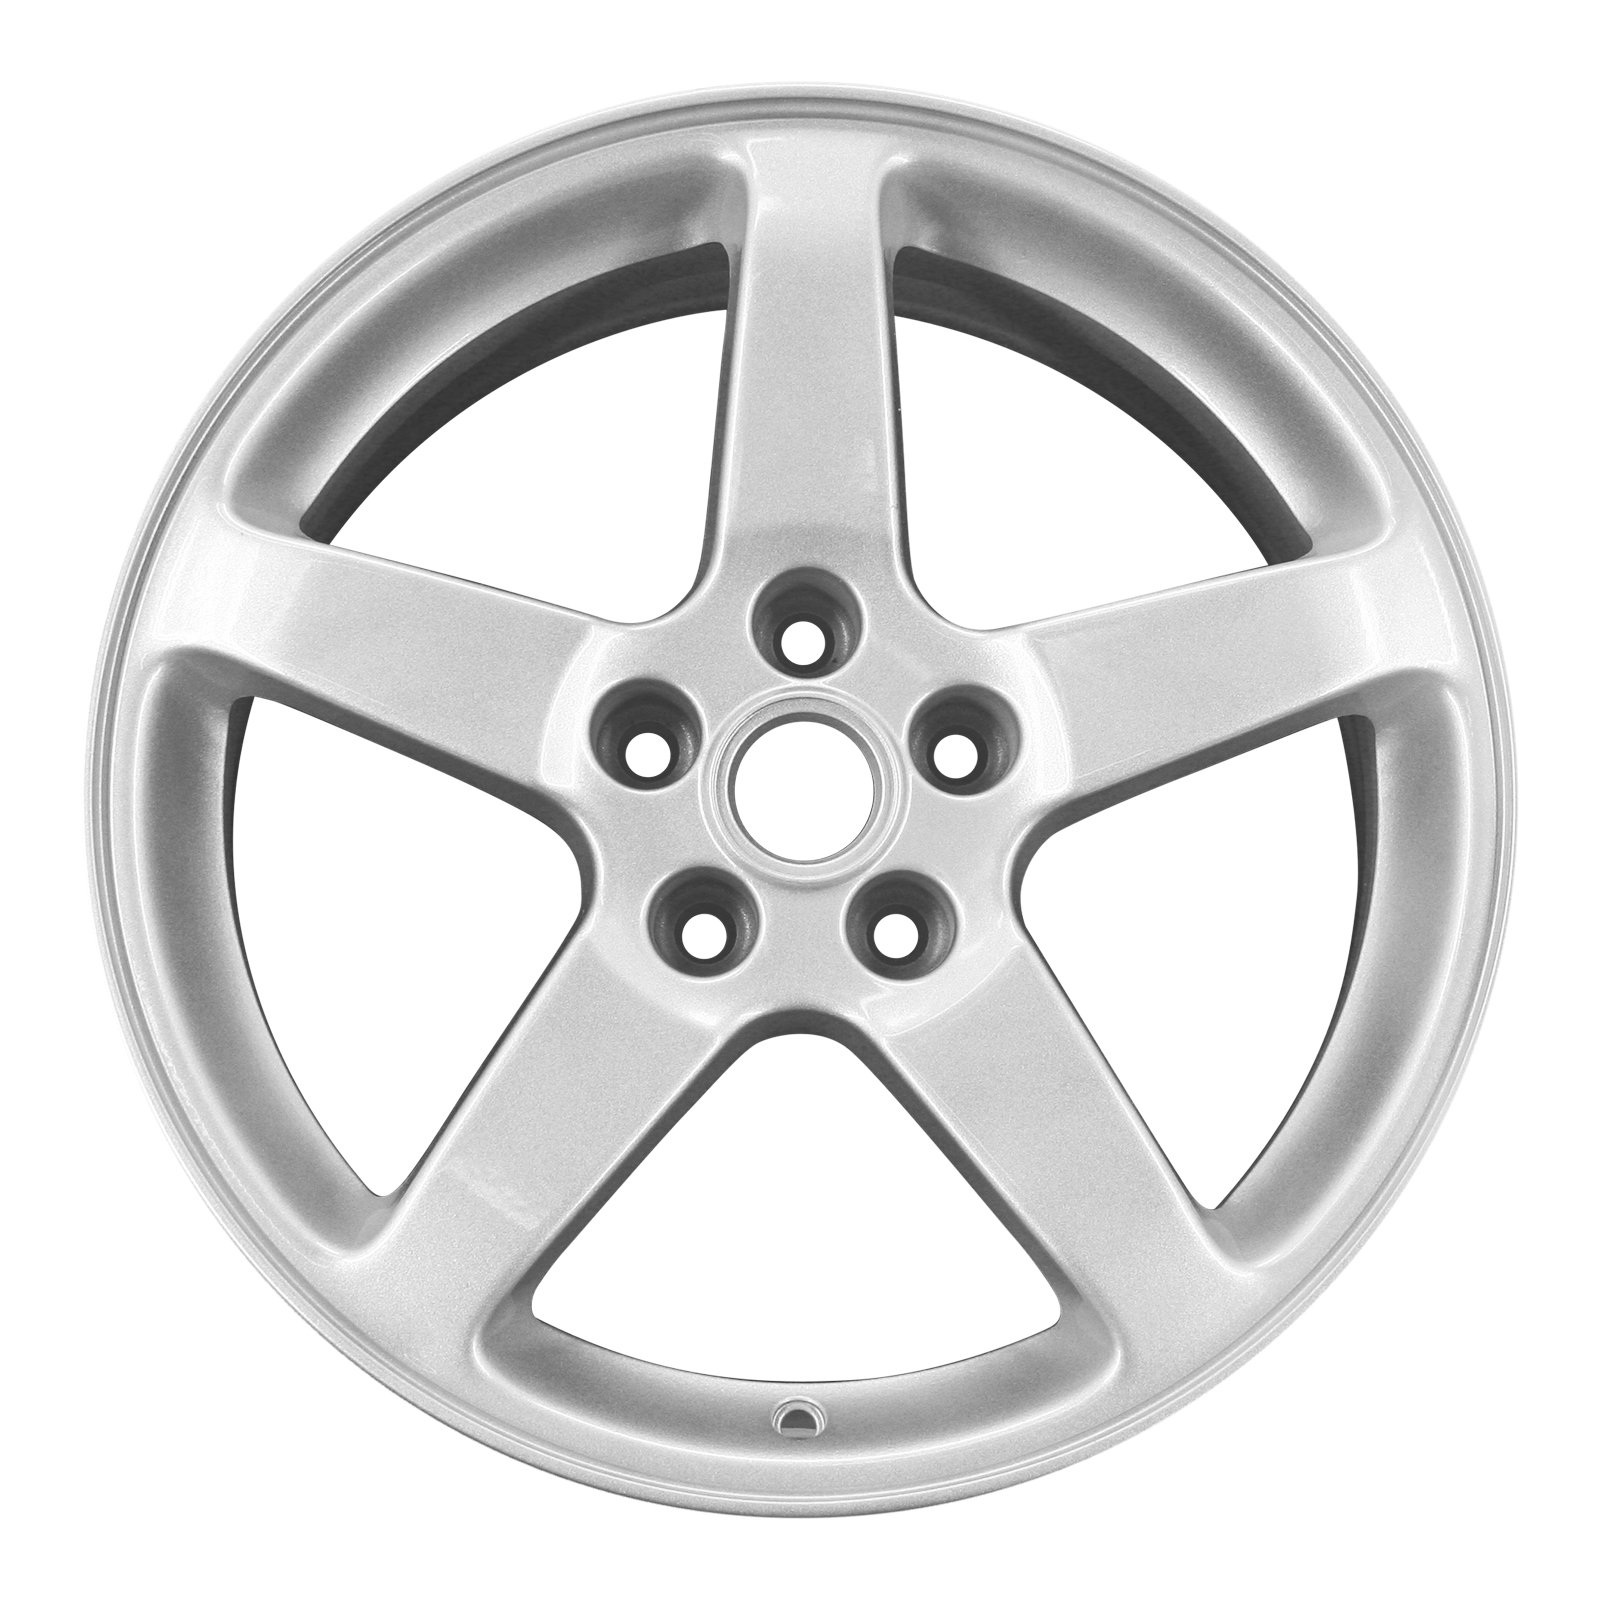 New 17'' Replacement Rim for Pontiac G6 2005-2009 Wheel 6585